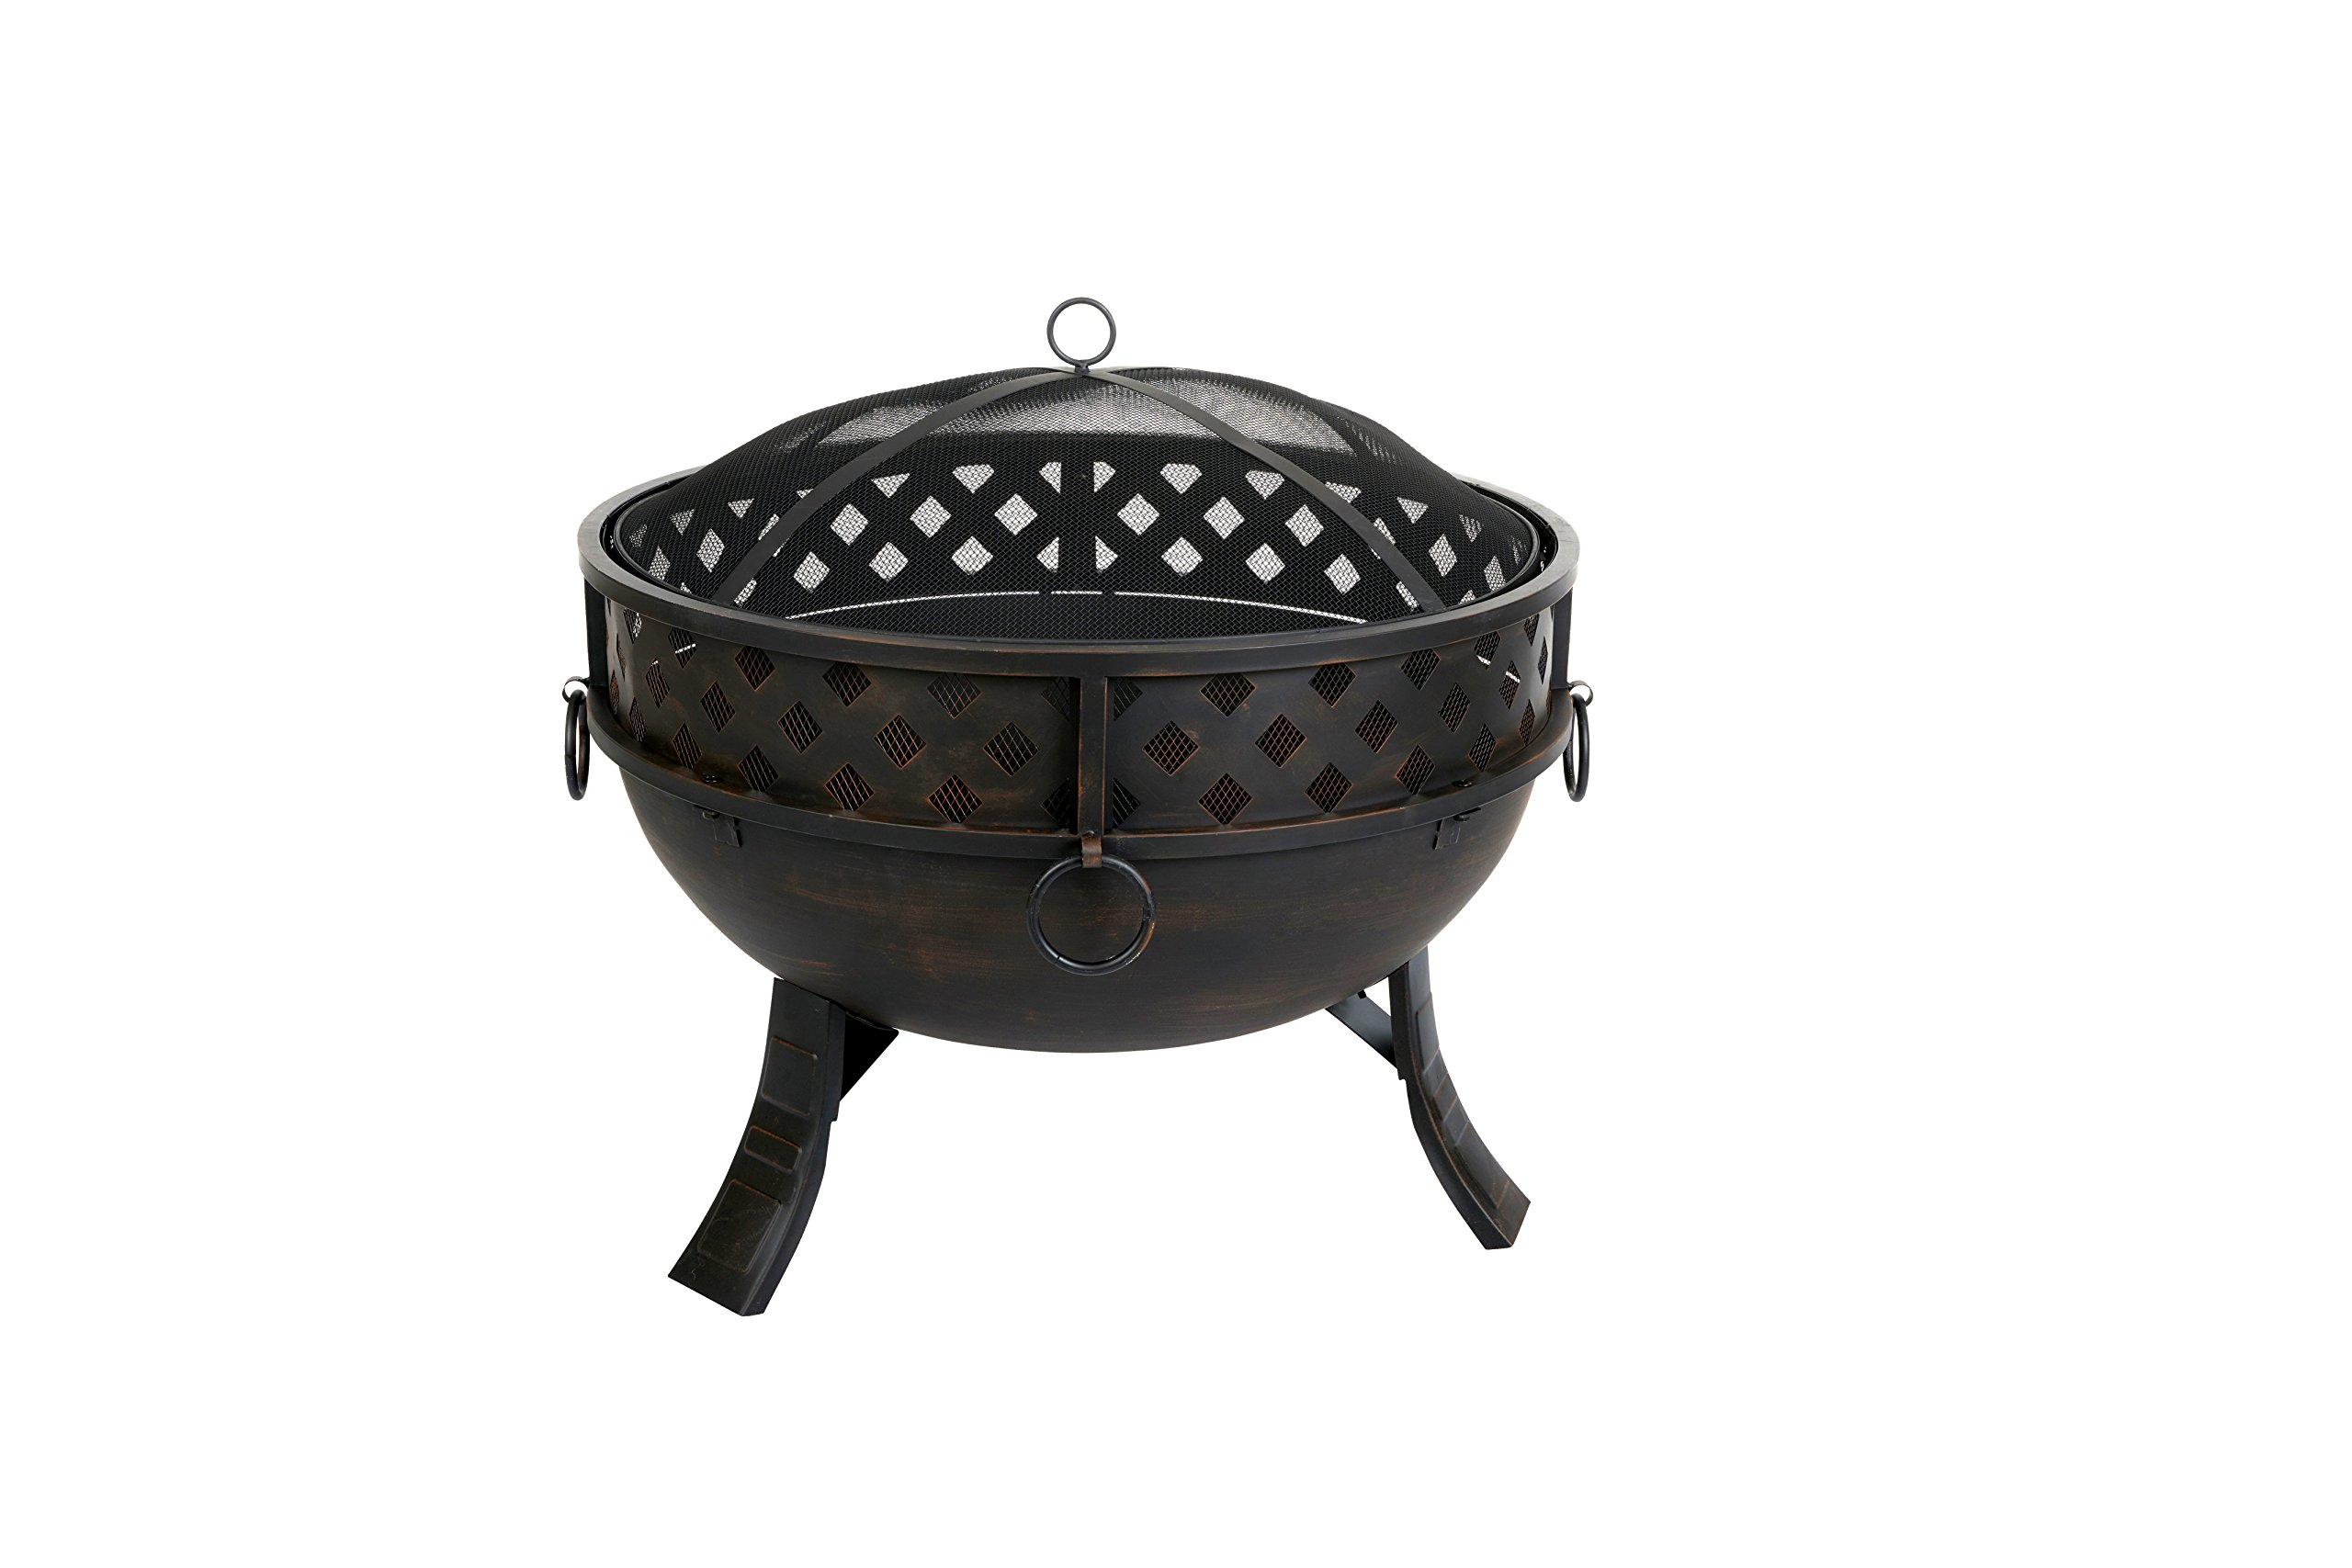 "Terra Verde Home DFP105 Round Fire Pit, 27"", Bronze - Easy to assemble Burns wood and fire logs (not included) Includes protective mesh screen - patio, outdoor-decor, fire-pits-outdoor-fireplaces - 81nXGYmYCKL -"